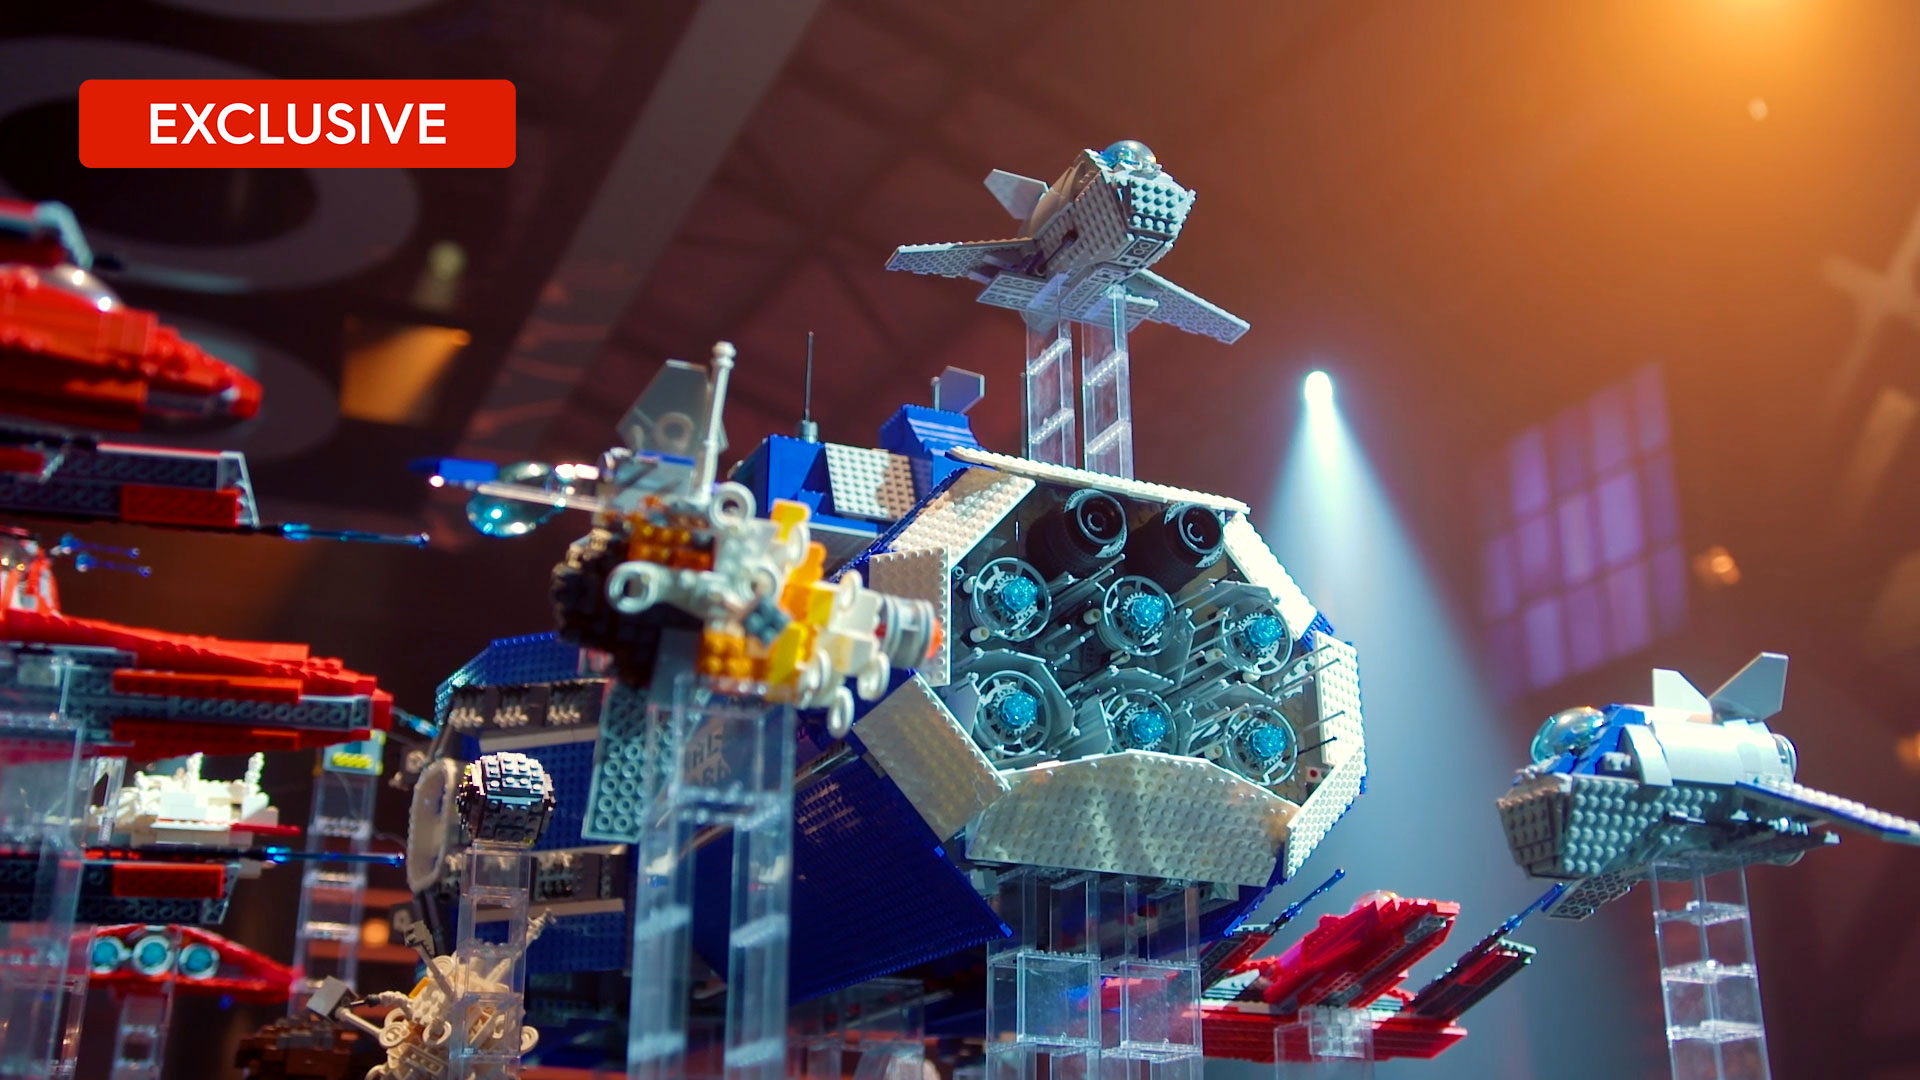 LEGO speed build: Jordan and Miller's spaceship